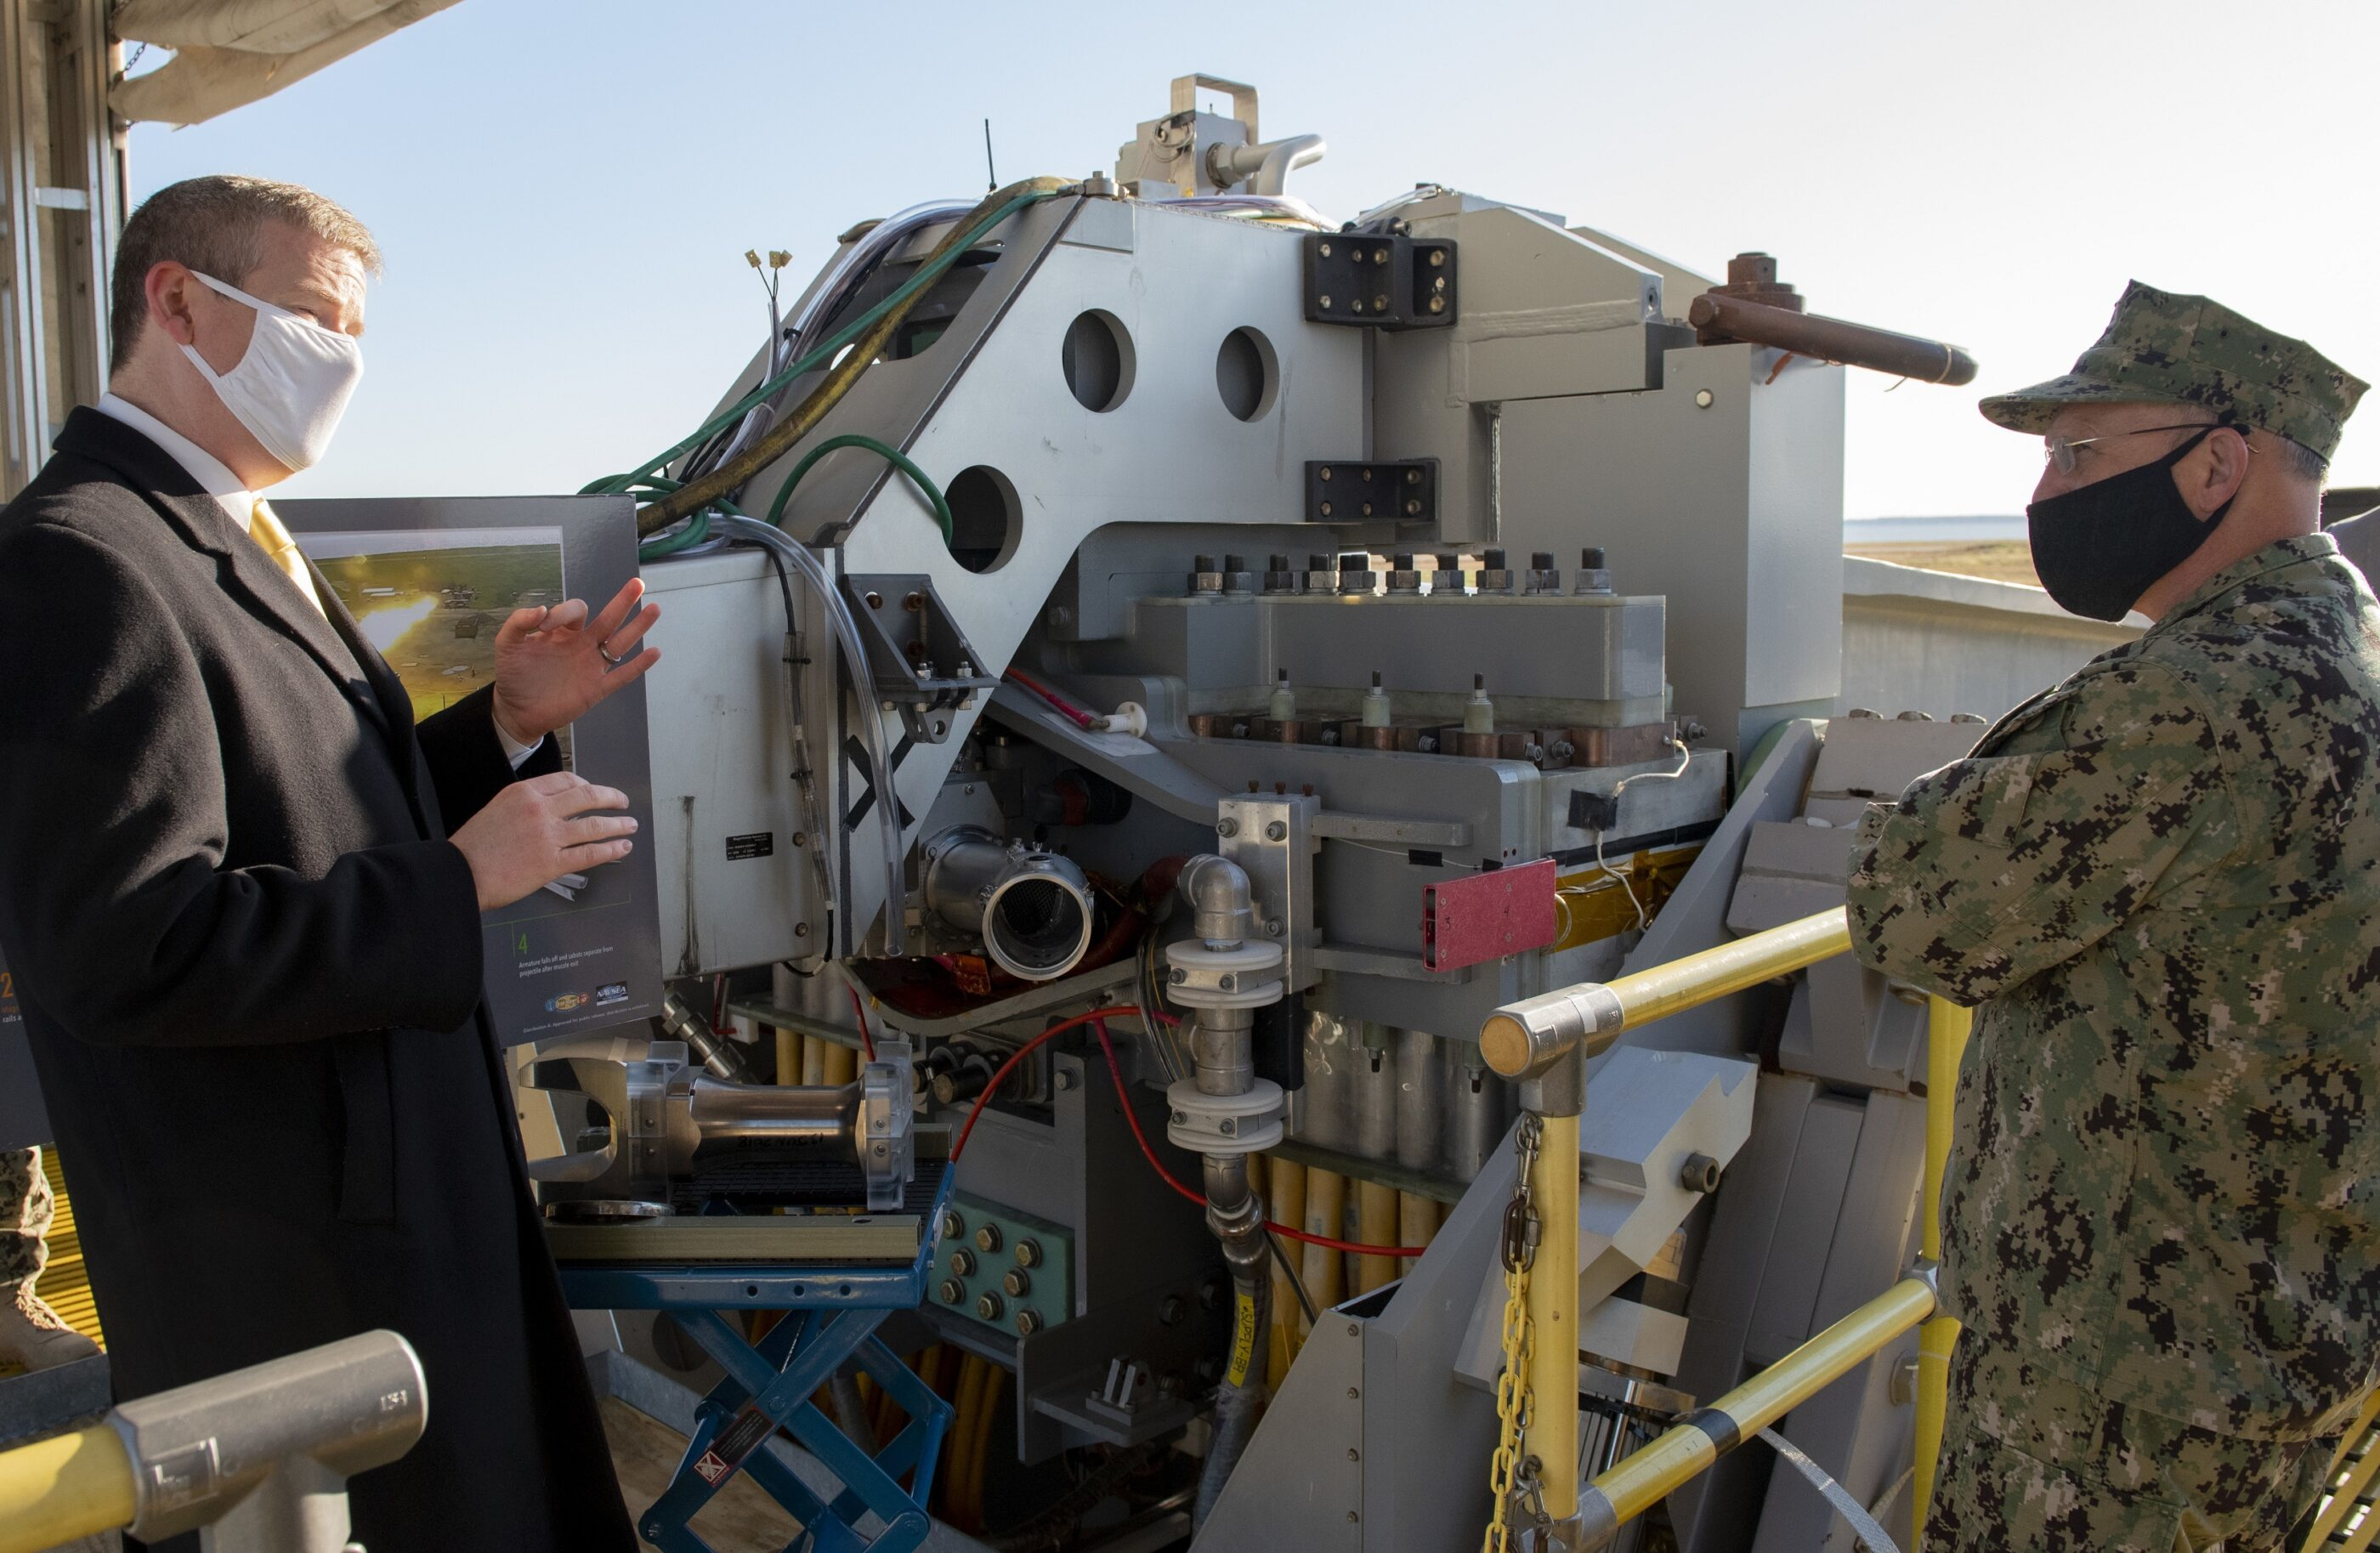 Chief of Naval Operations: directed energy weapons are not science fiction